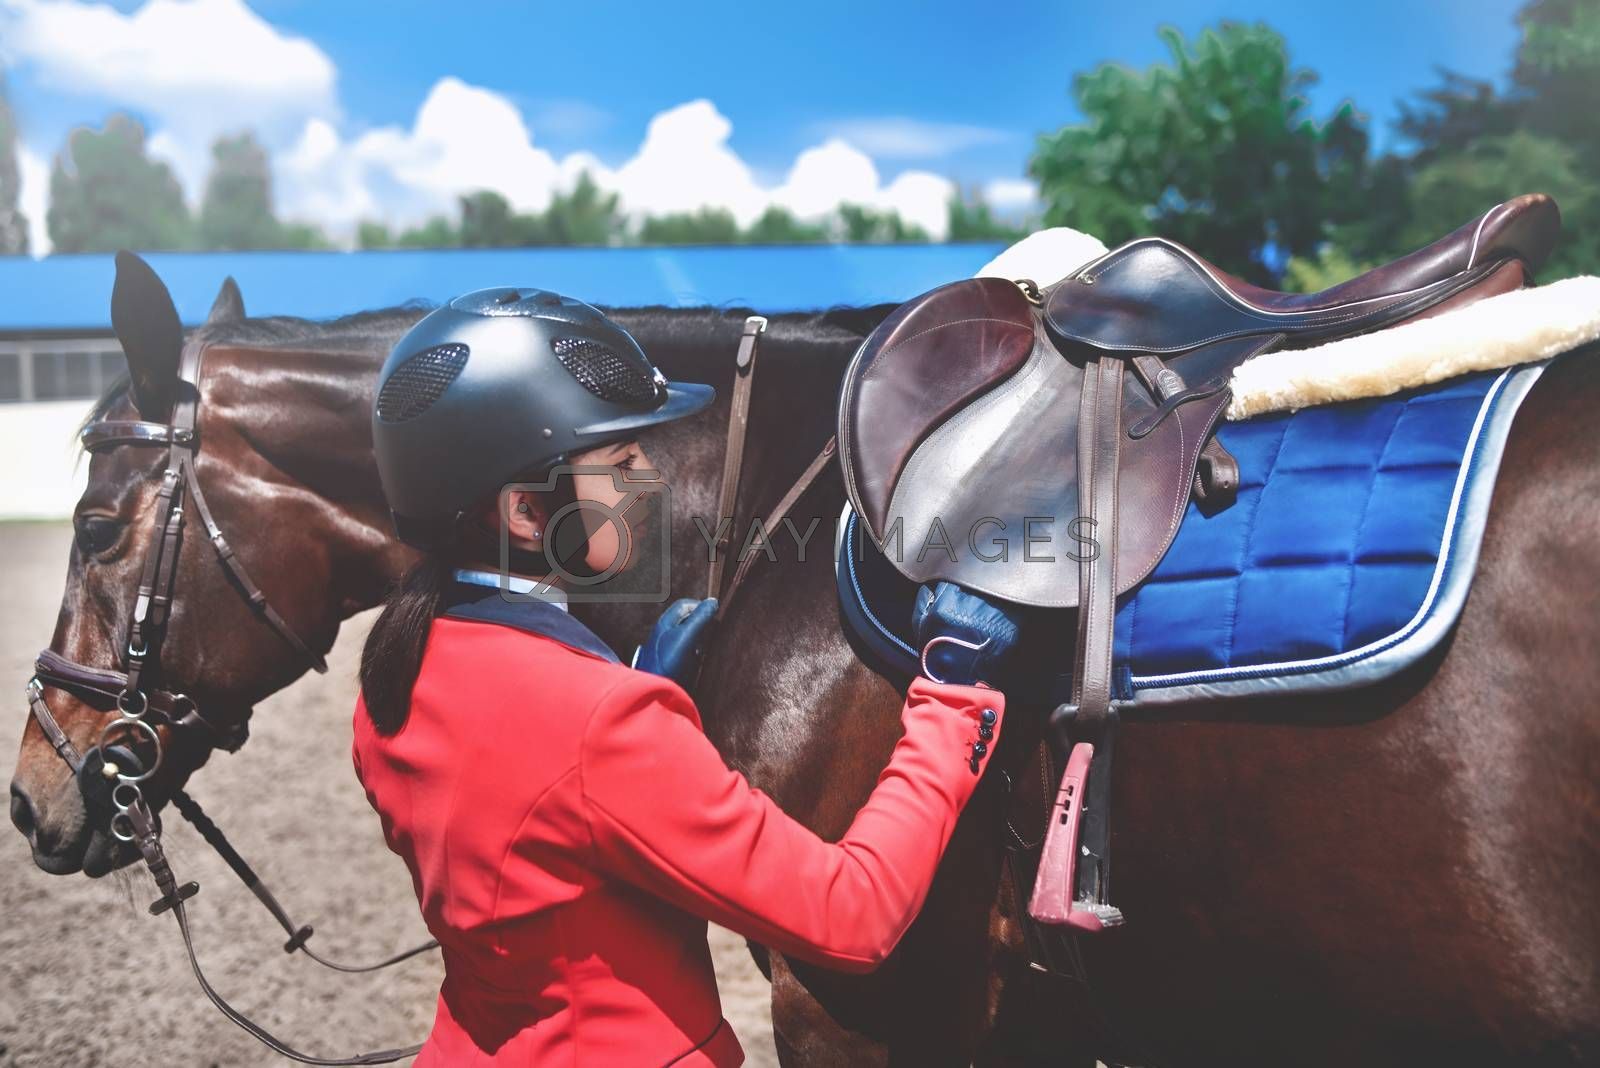 Girl jockey adjusts saddle on her horse to take part in horse races